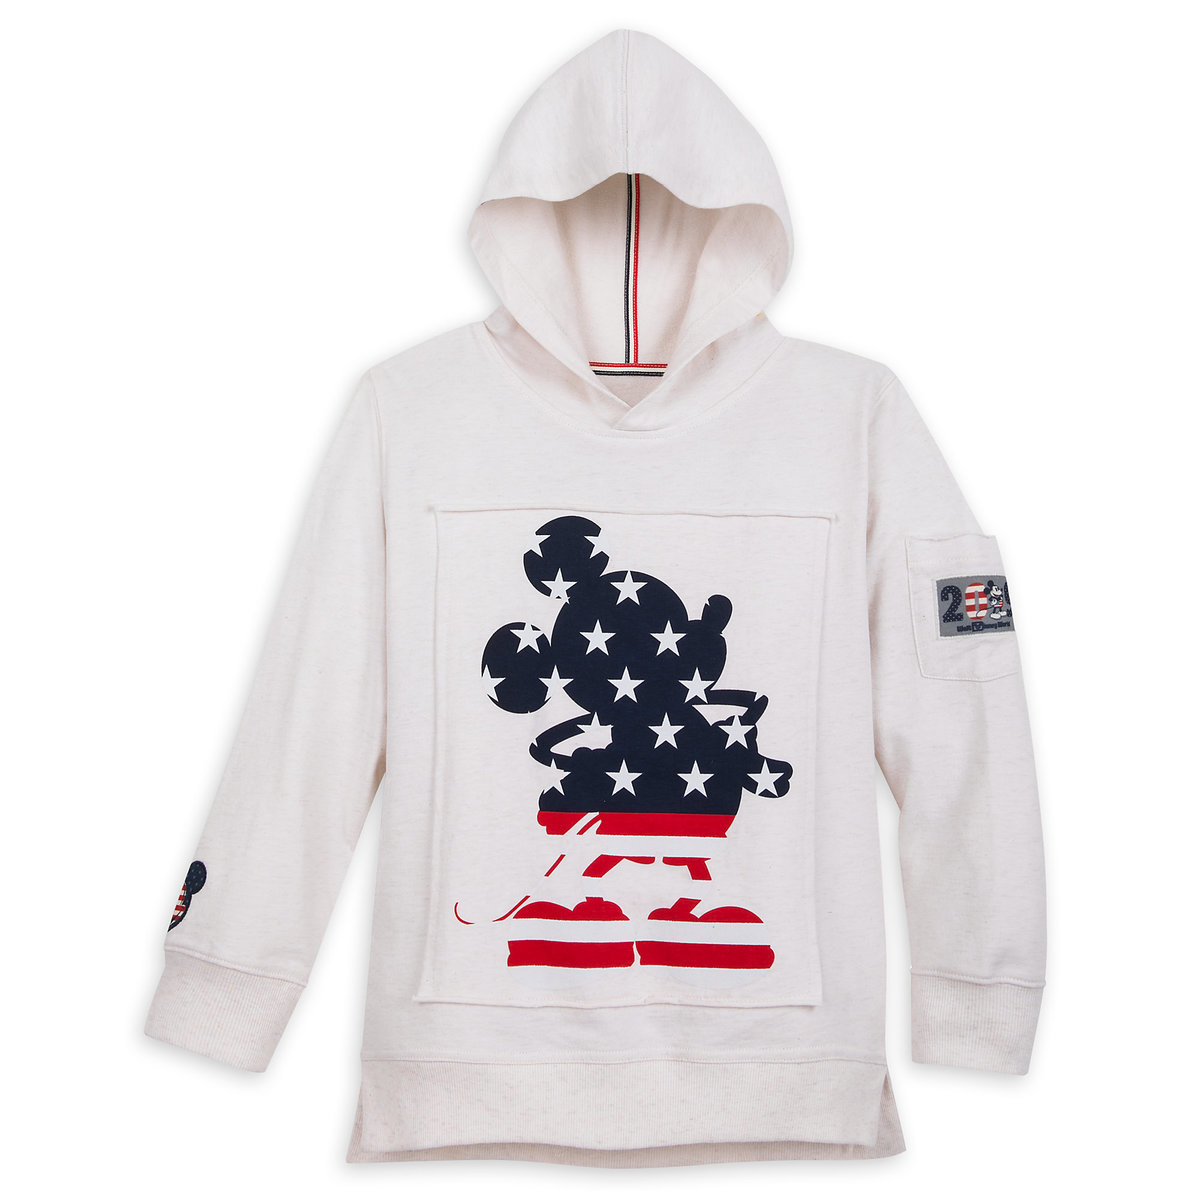 23e83147e1d6 Product Image of Mickey Mouse Americana Pullover Hoodie for Boys - Walt  Disney World 2019 #